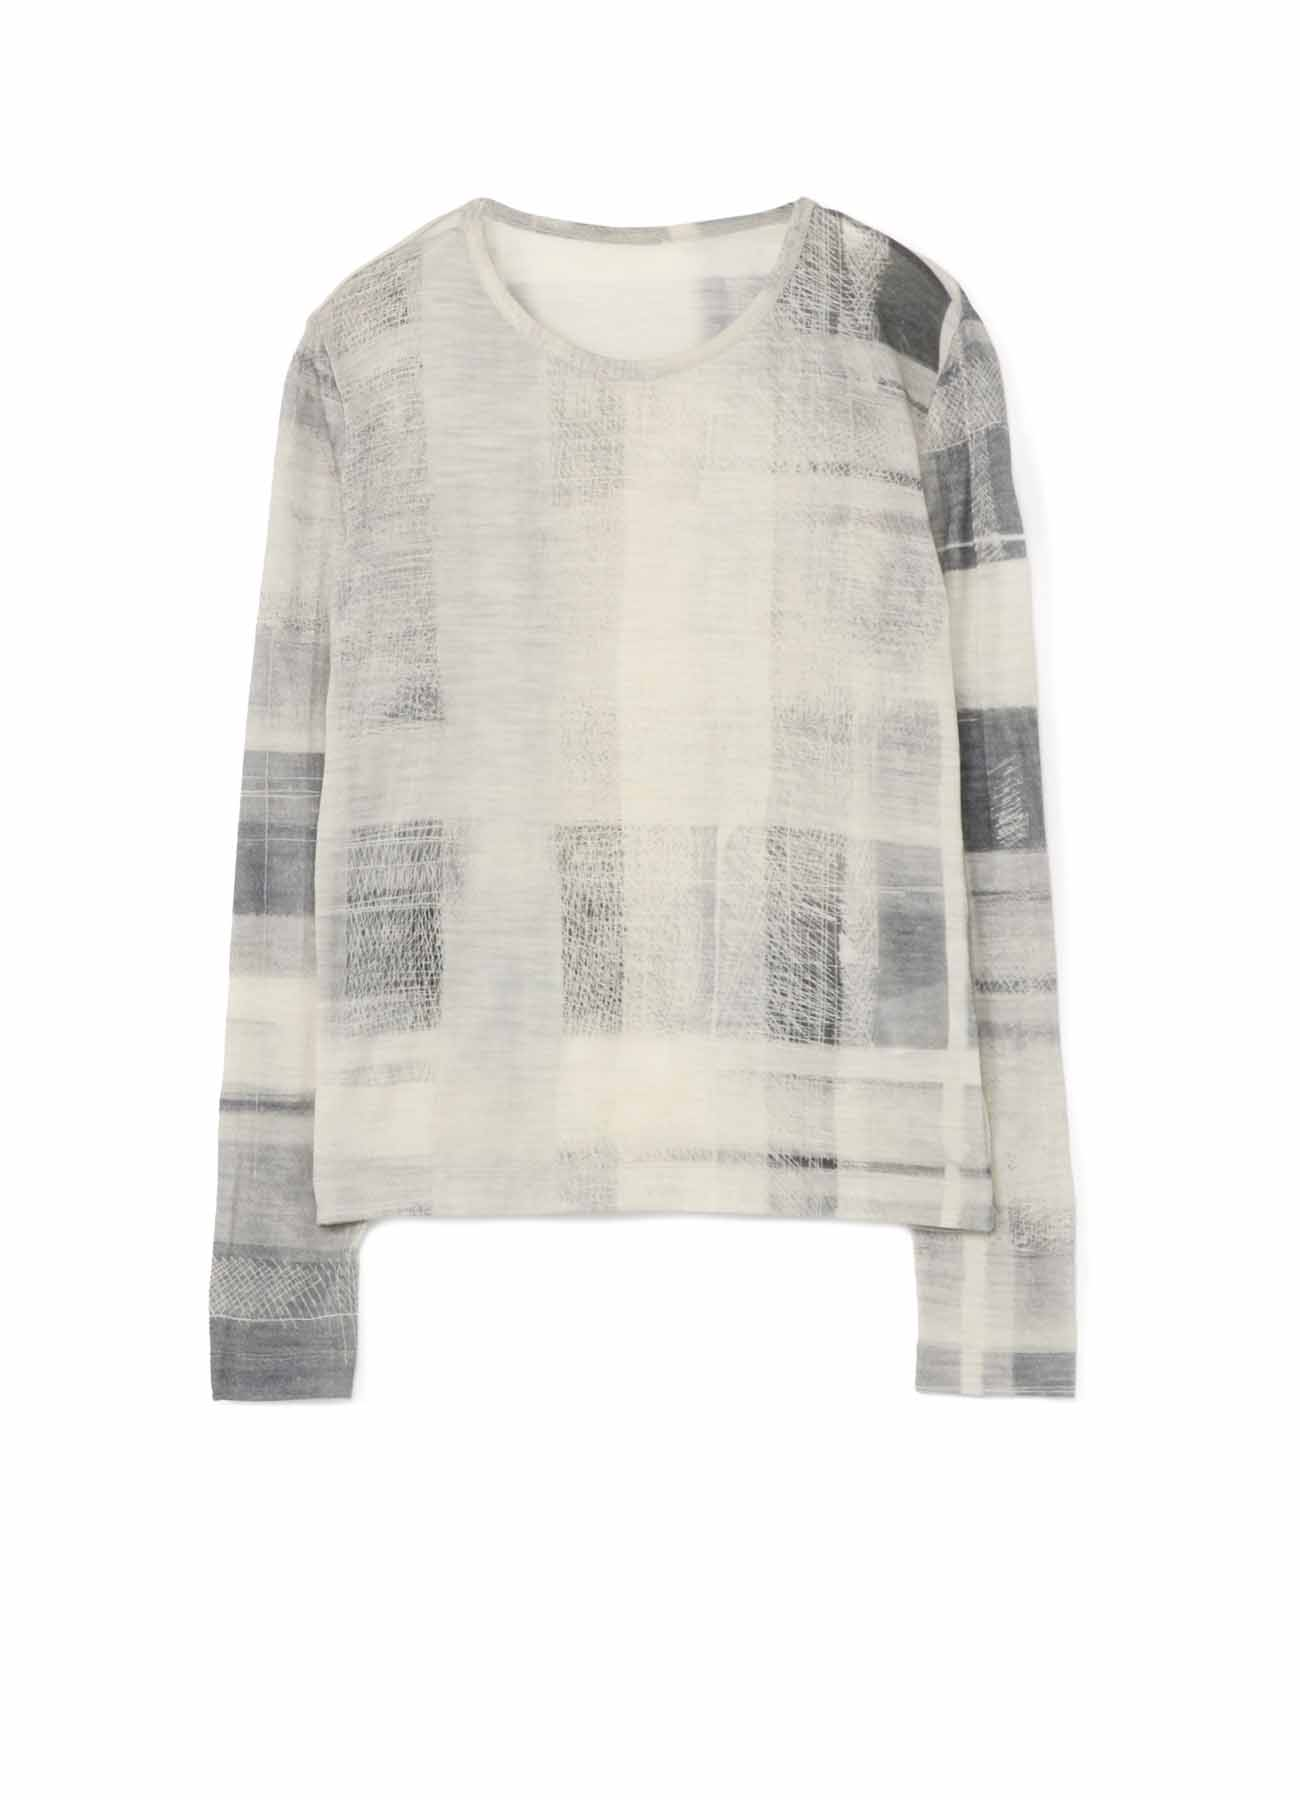 HAND PAINT CHECK PRINT ROUND NECK LONG SLEEVE T